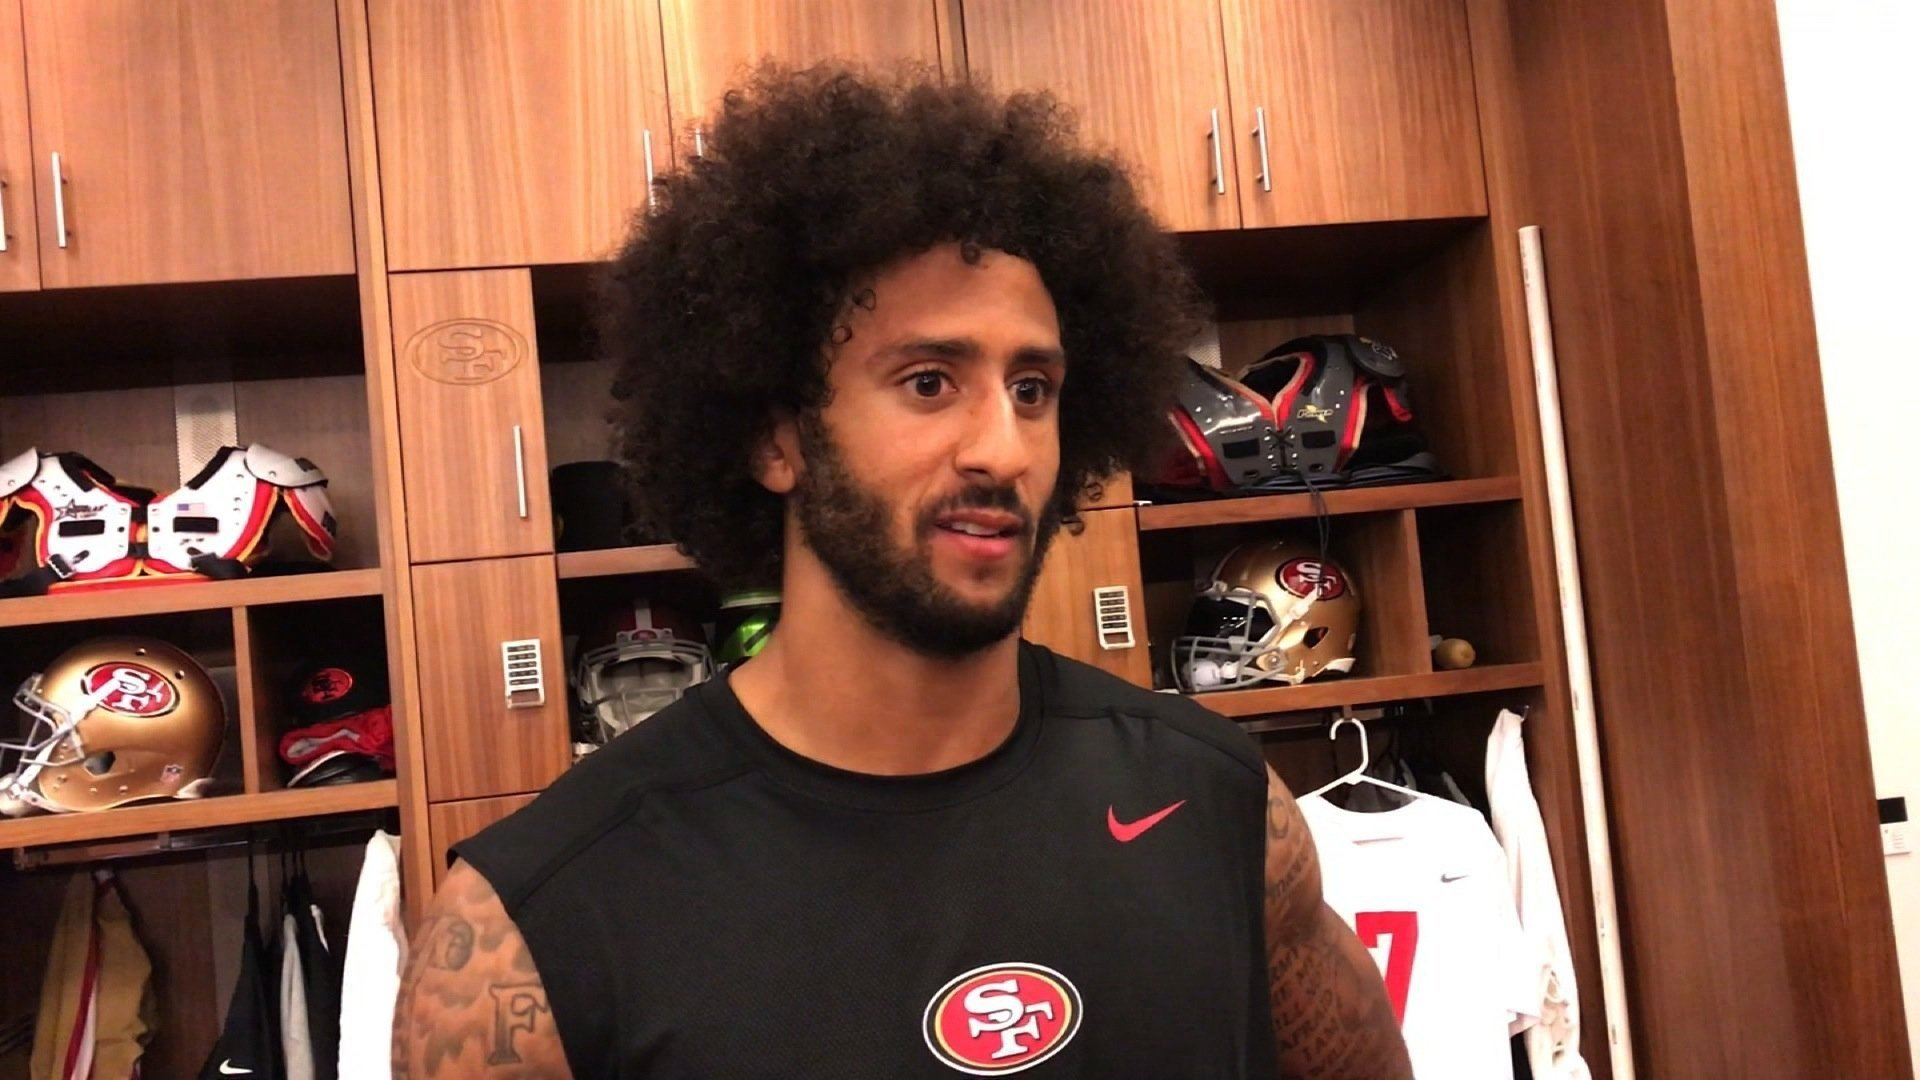 Colin Kaepernick still is without an NFL team, but that hasn't discouraged players for following his controversial lead and opting not to stand during the national anthem.